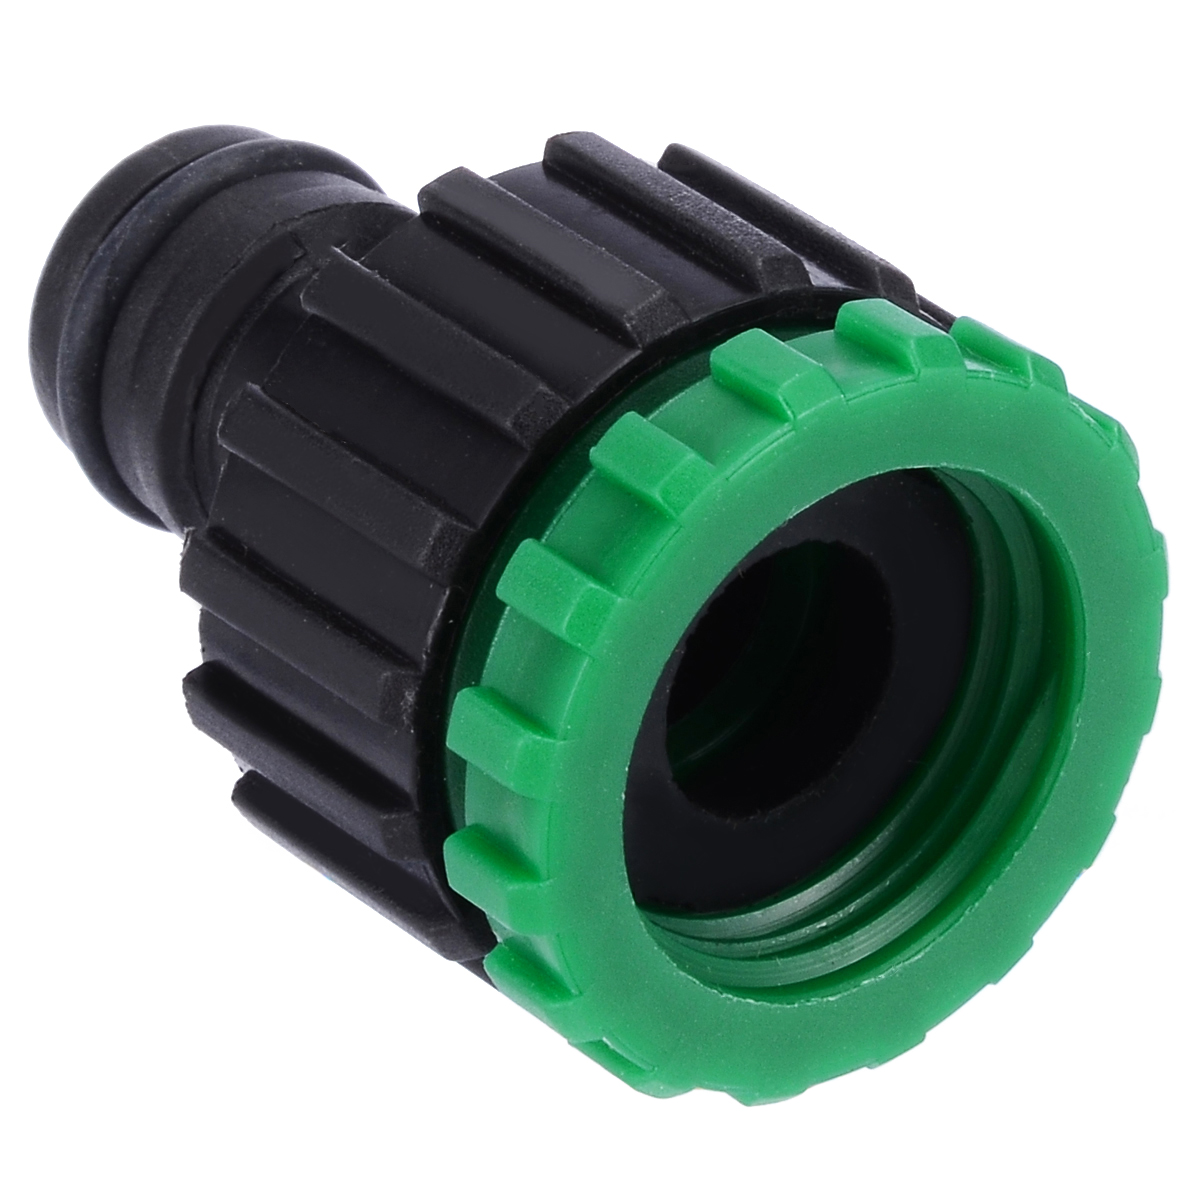 3//4 Brass 2-Way Quick Hose Pipe Tap Adapter Connector Garden Irrigation Hose Connectors Manifold Double Outside Y Style Garden Hose